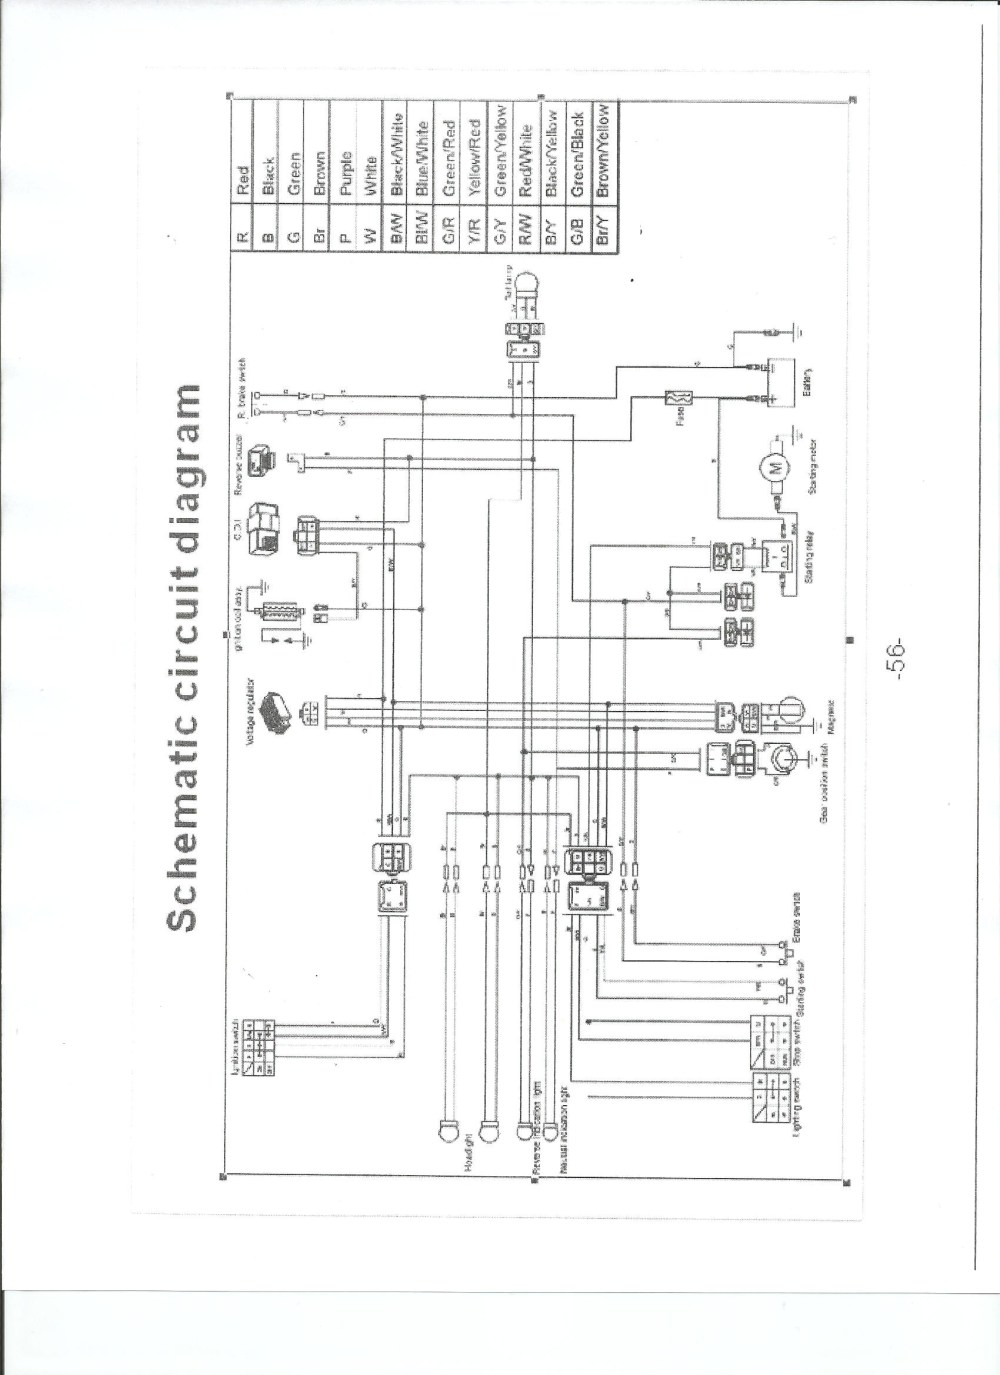 medium resolution of tao tao 50cc moped wiring diagram example electrical wiring diagram u2022 jonway 50cc scooter wiring